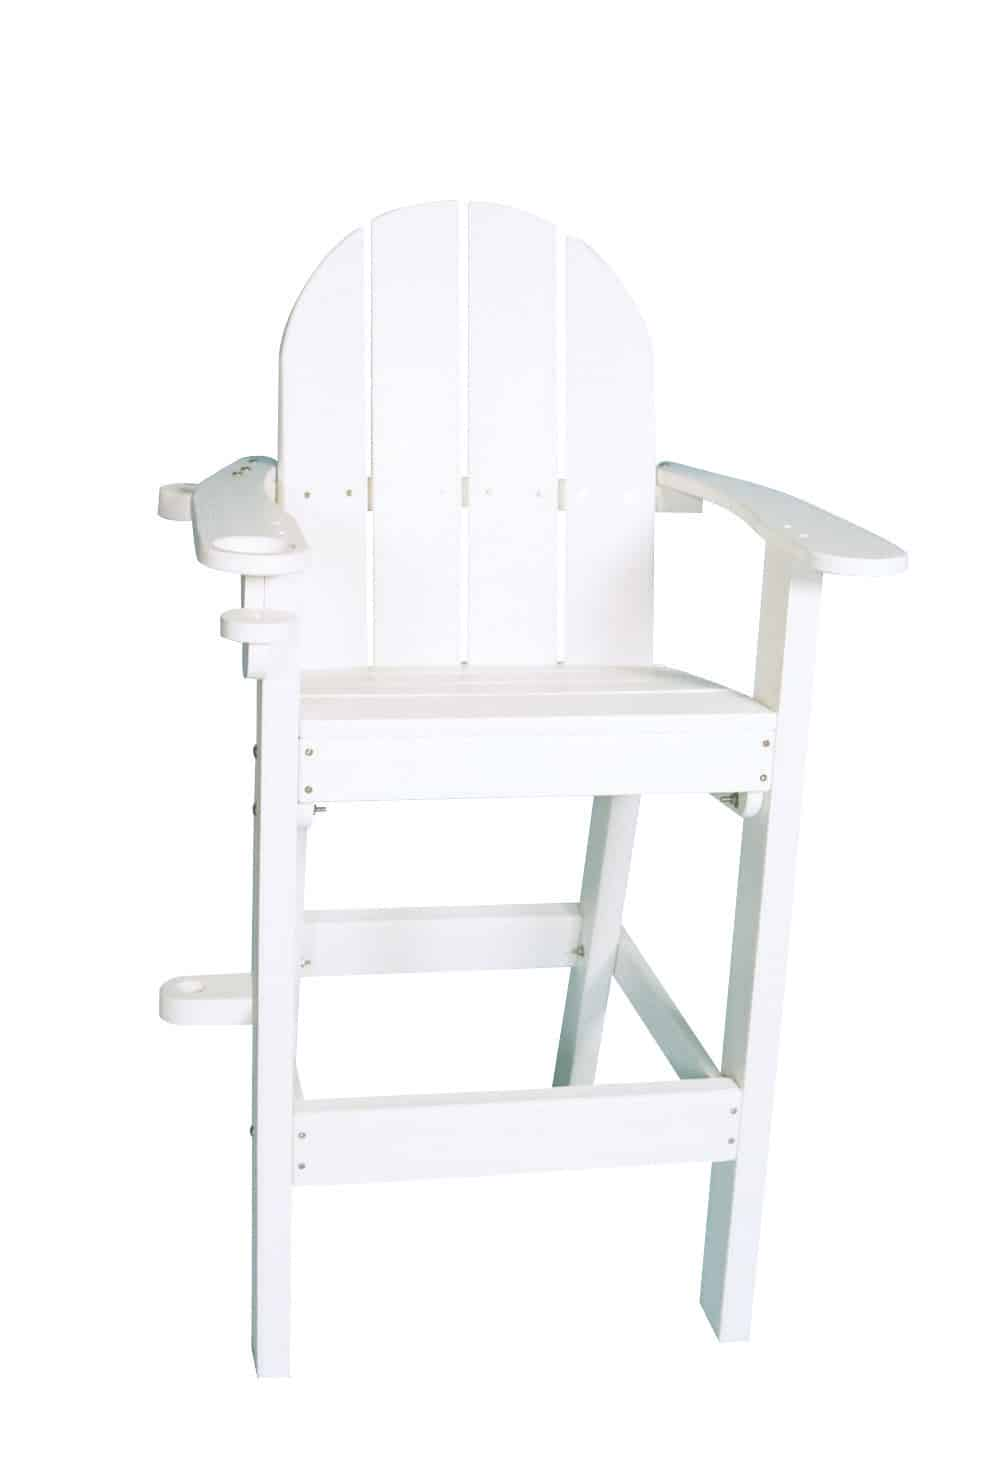 paragon lifeguard chairs wine barrel rocking chair movable 6 high swimtime 30 l x 29 w 51 h